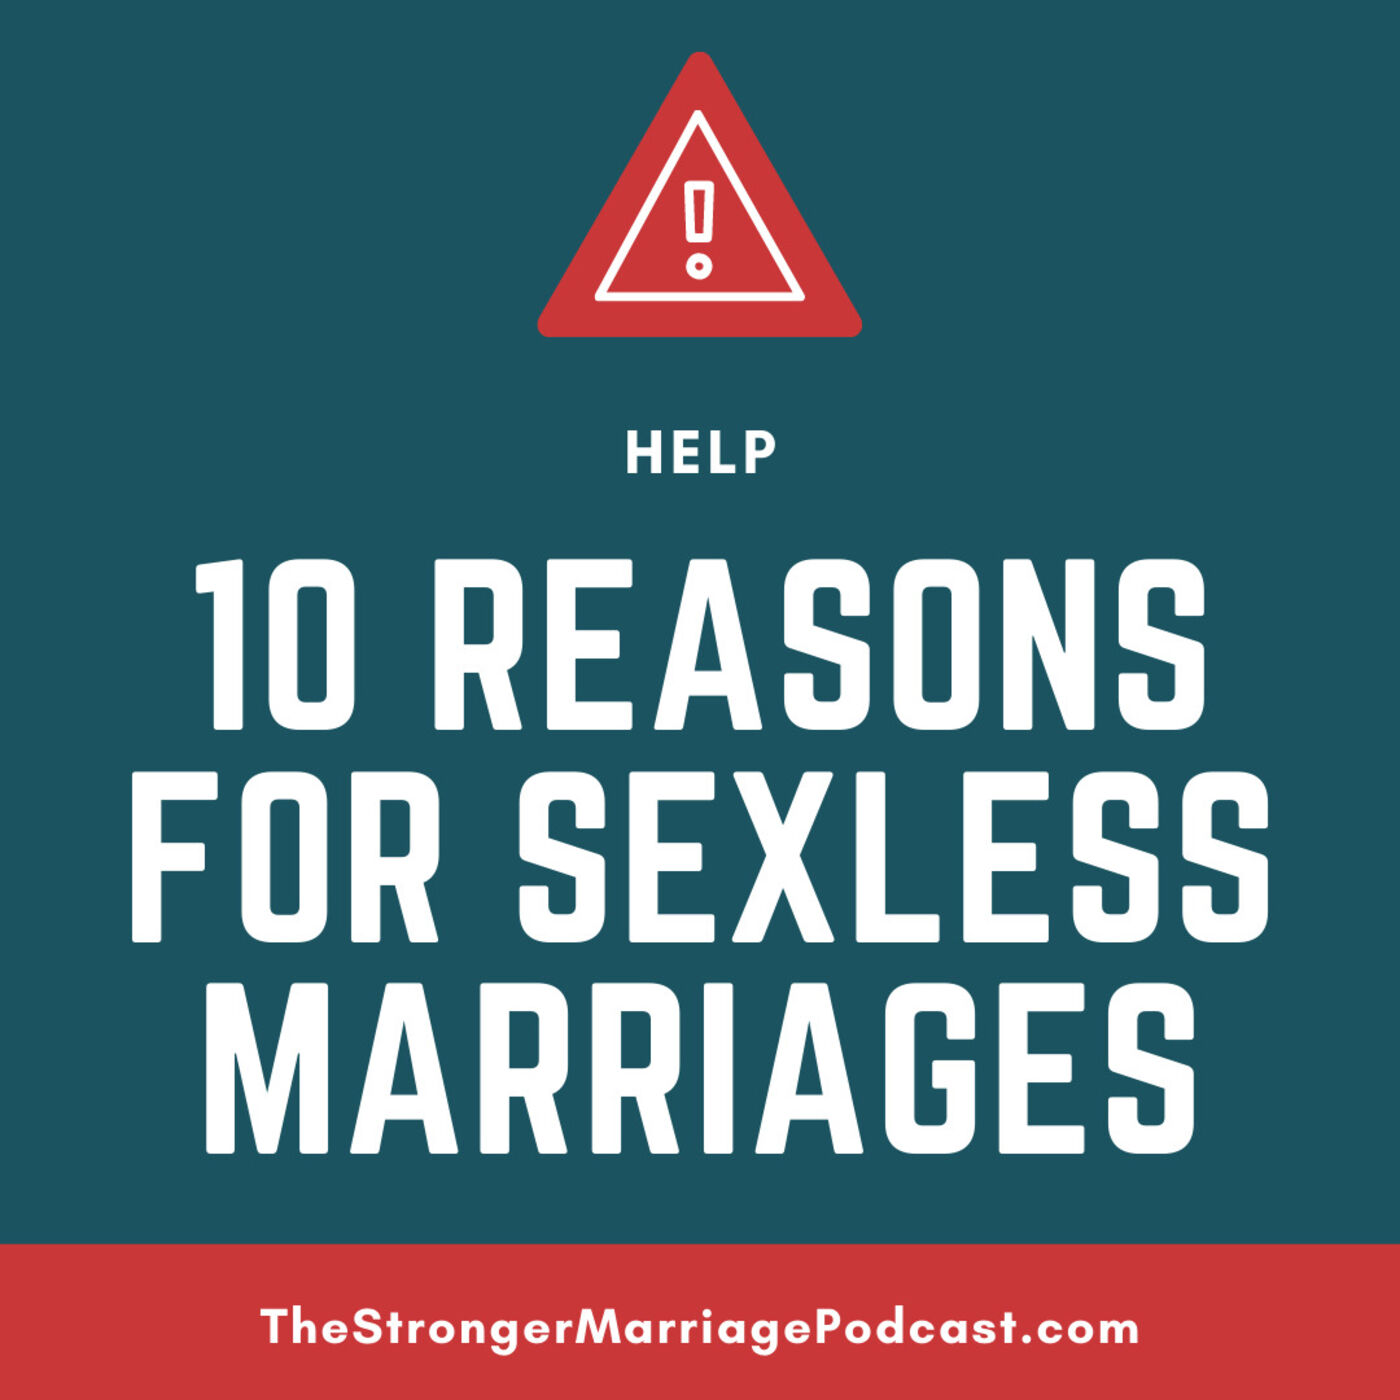 10 REASONS FOR A SEXLESS MARRIAGE - (And How To Fix Them)